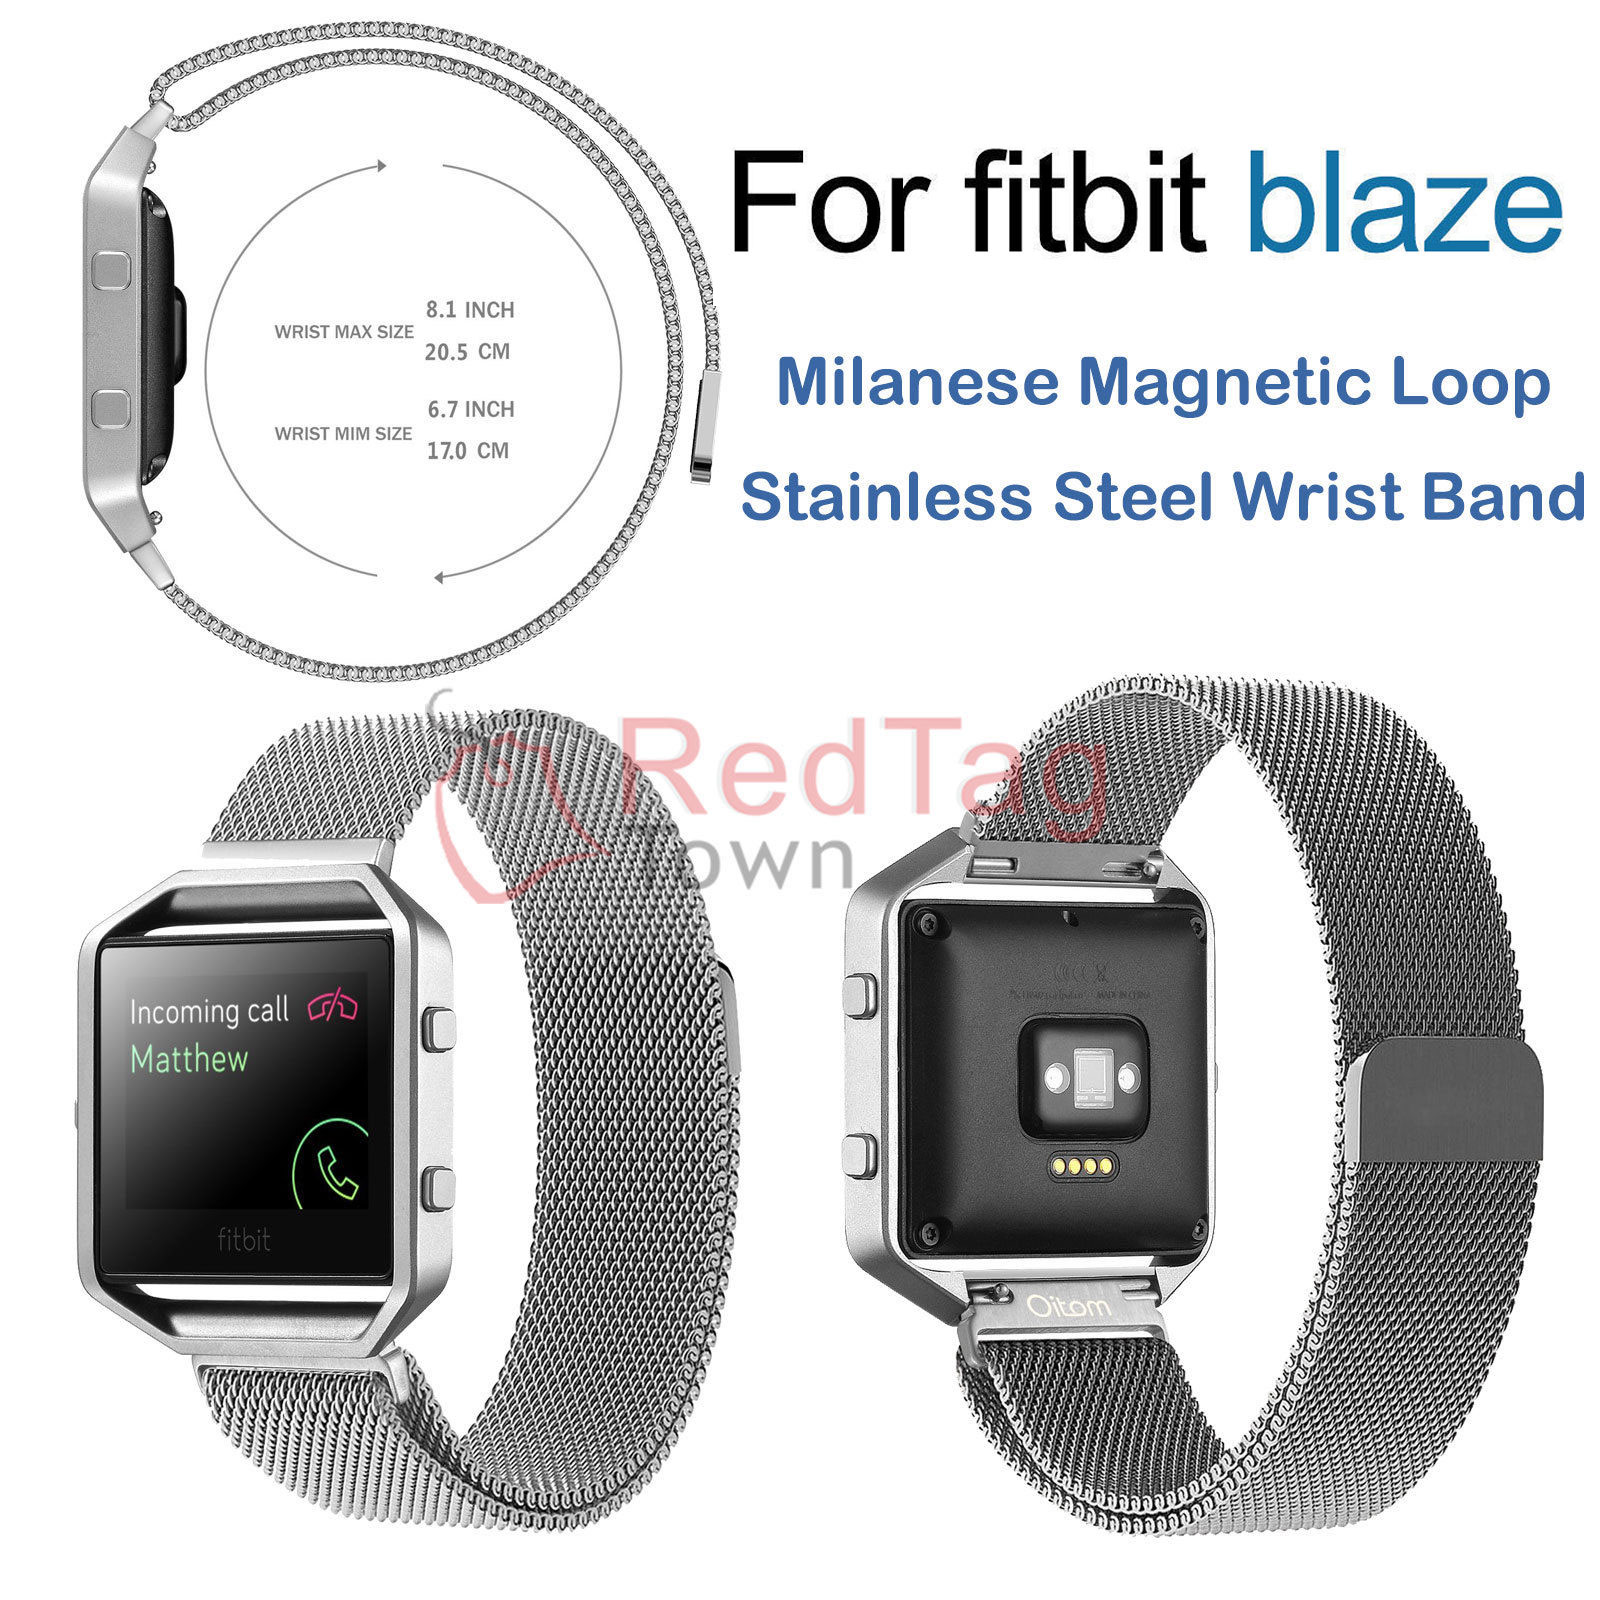 Milanese-Magnetic-Loop-Metal-Wrist-Watch-Band-Strap-Replacement-For-Fitbit-Blaze thumbnail 18